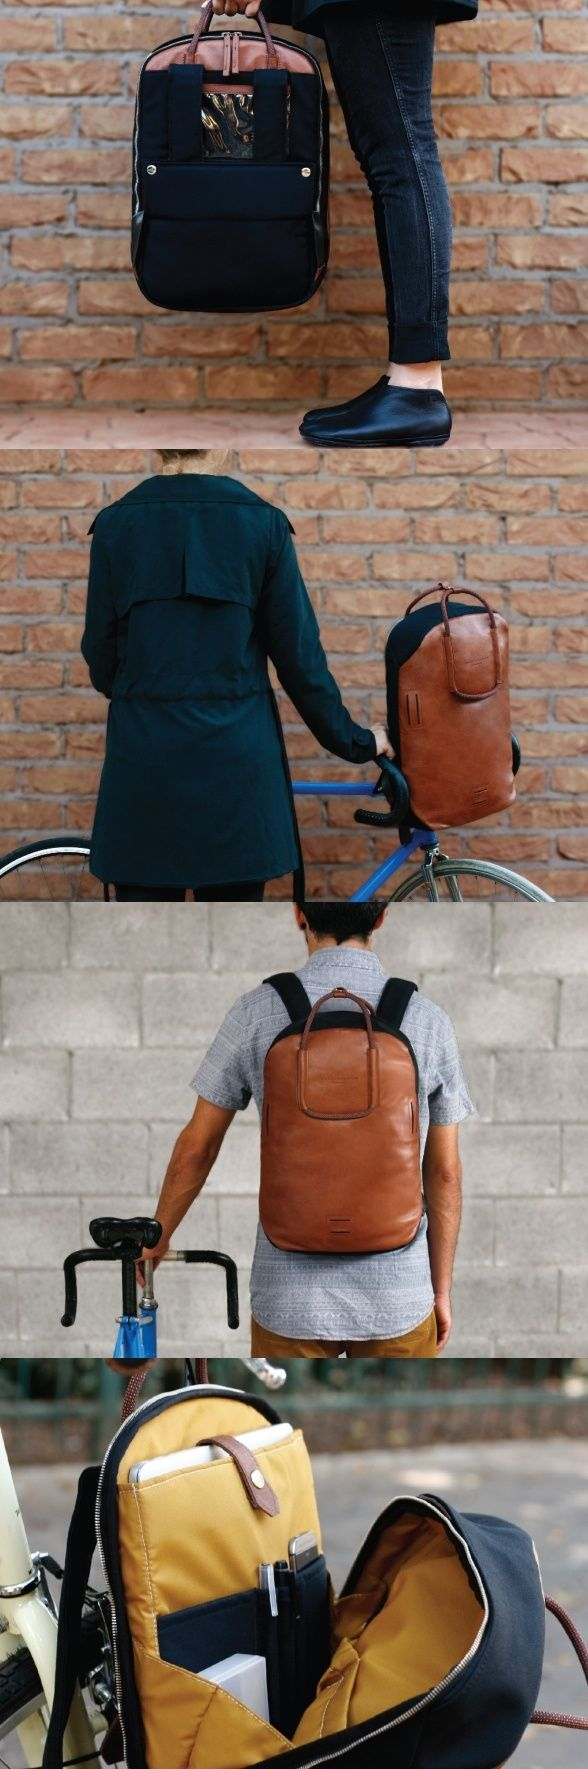 Tastefully marrying #Leather and #Fabric, these #backpacks lend themselves to easy cycling in numerous ways. You have junctions to connect your #helmet to the #backpack, and even strap your #flashlight #YankoDesign